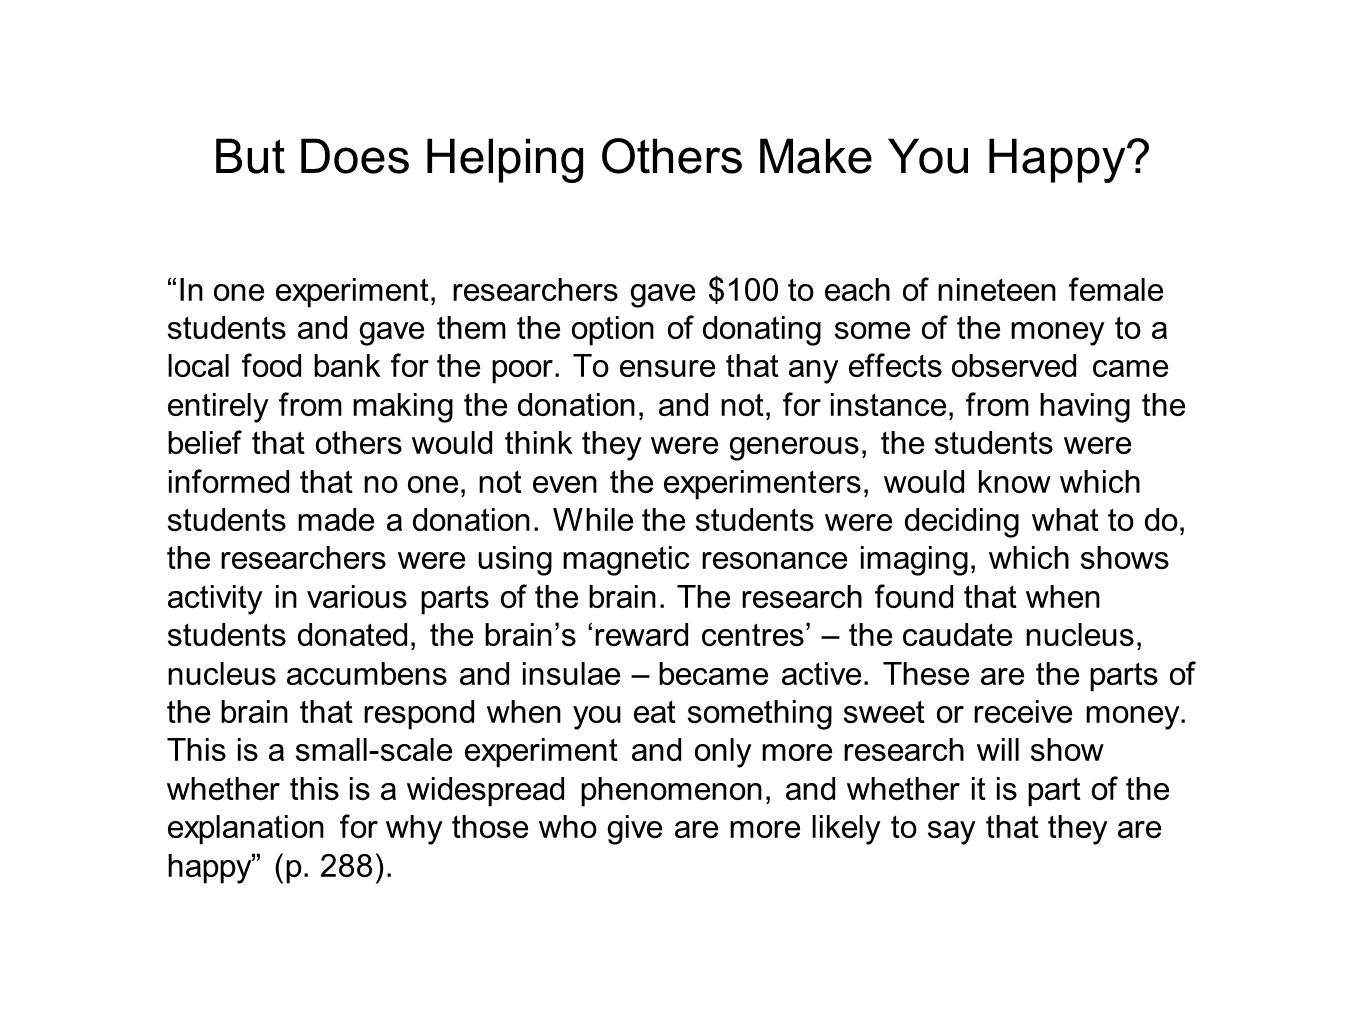 But Does Helping Others Make You Happy